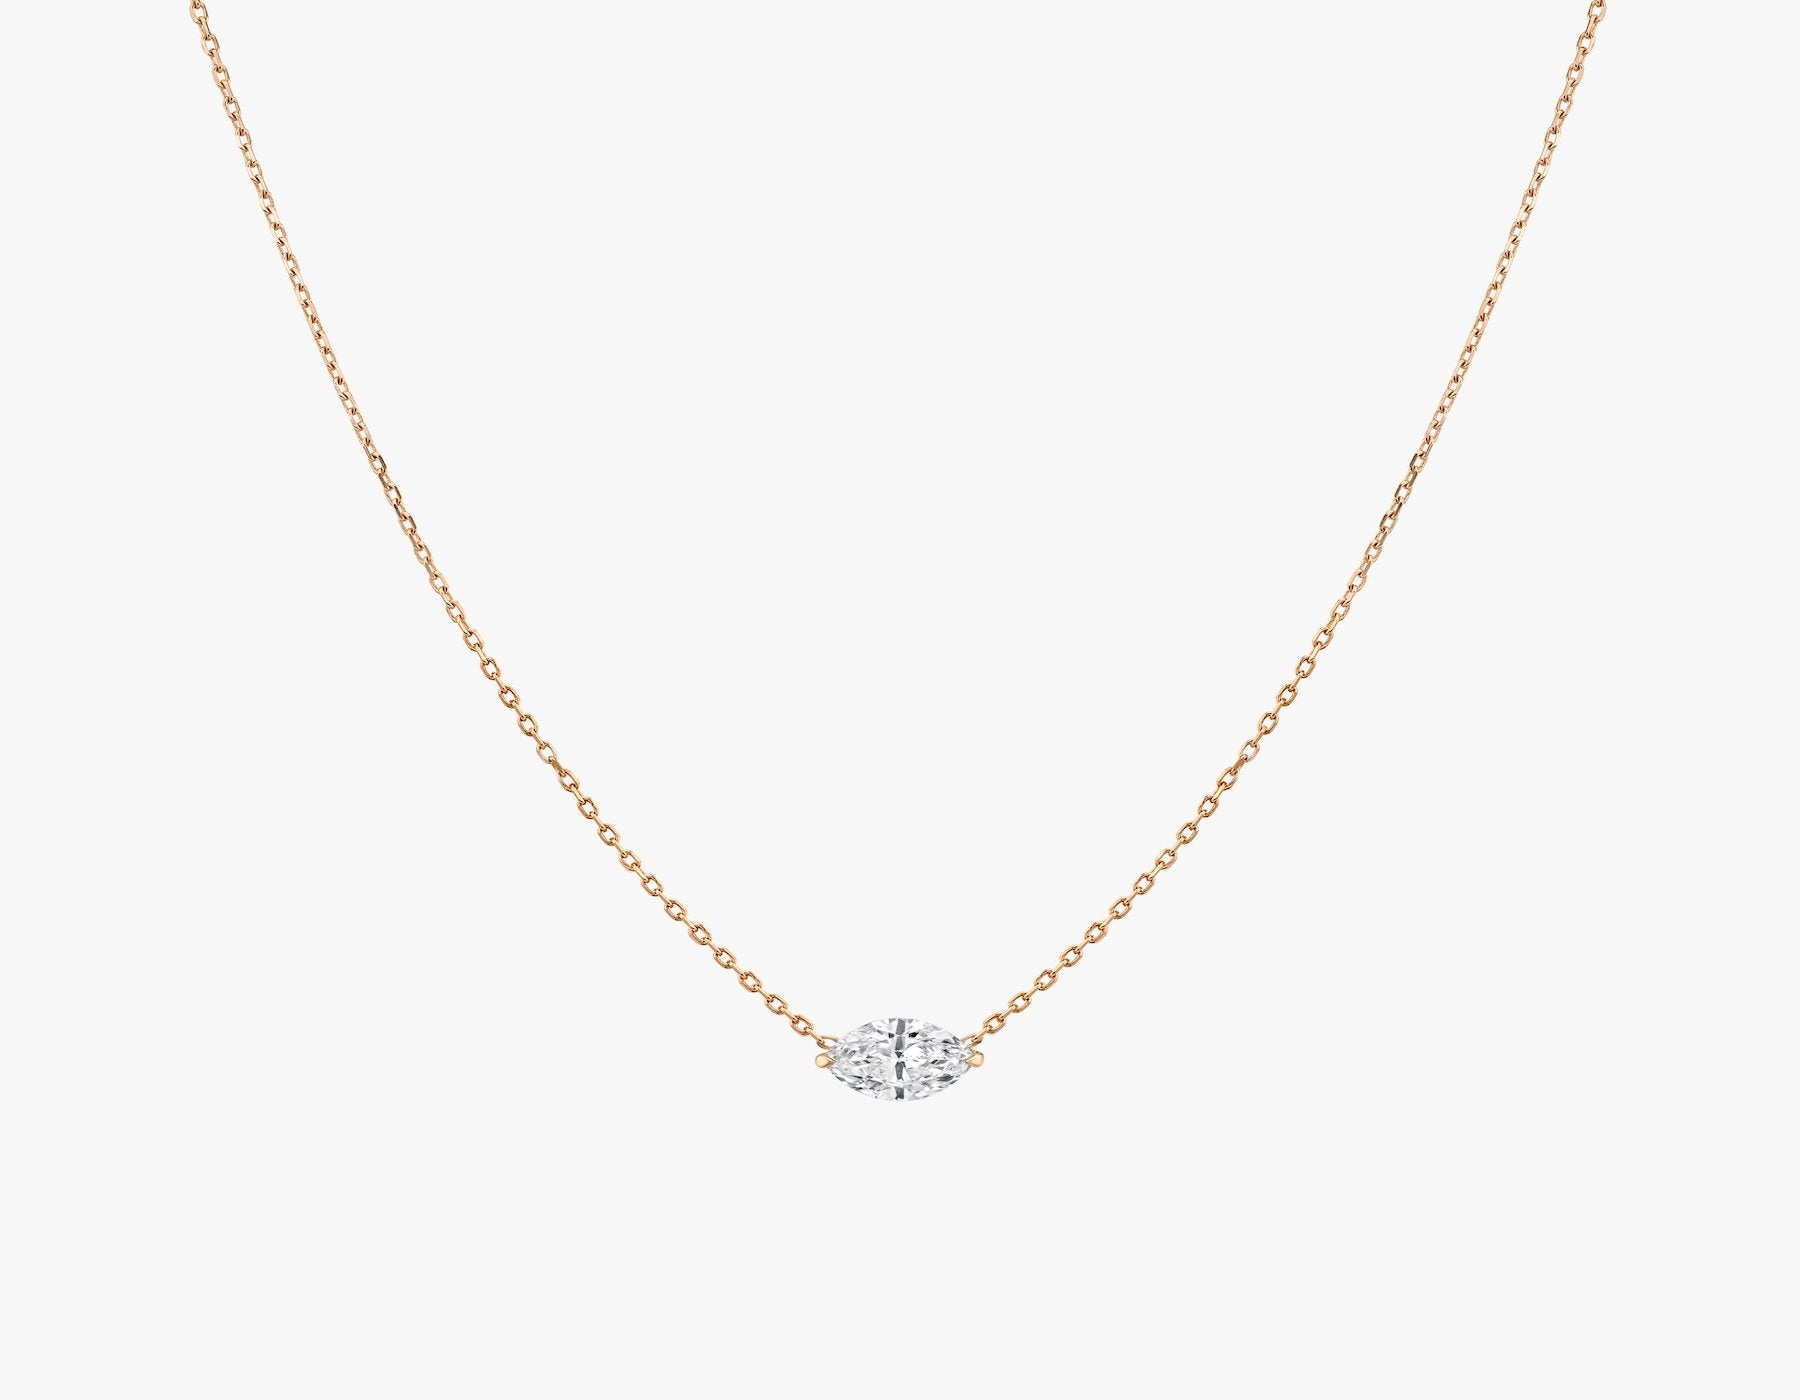 Vrai 14K solid gold solitaire marquise diamond necklace 1ct minimalist delicate, 14K Rose Gold